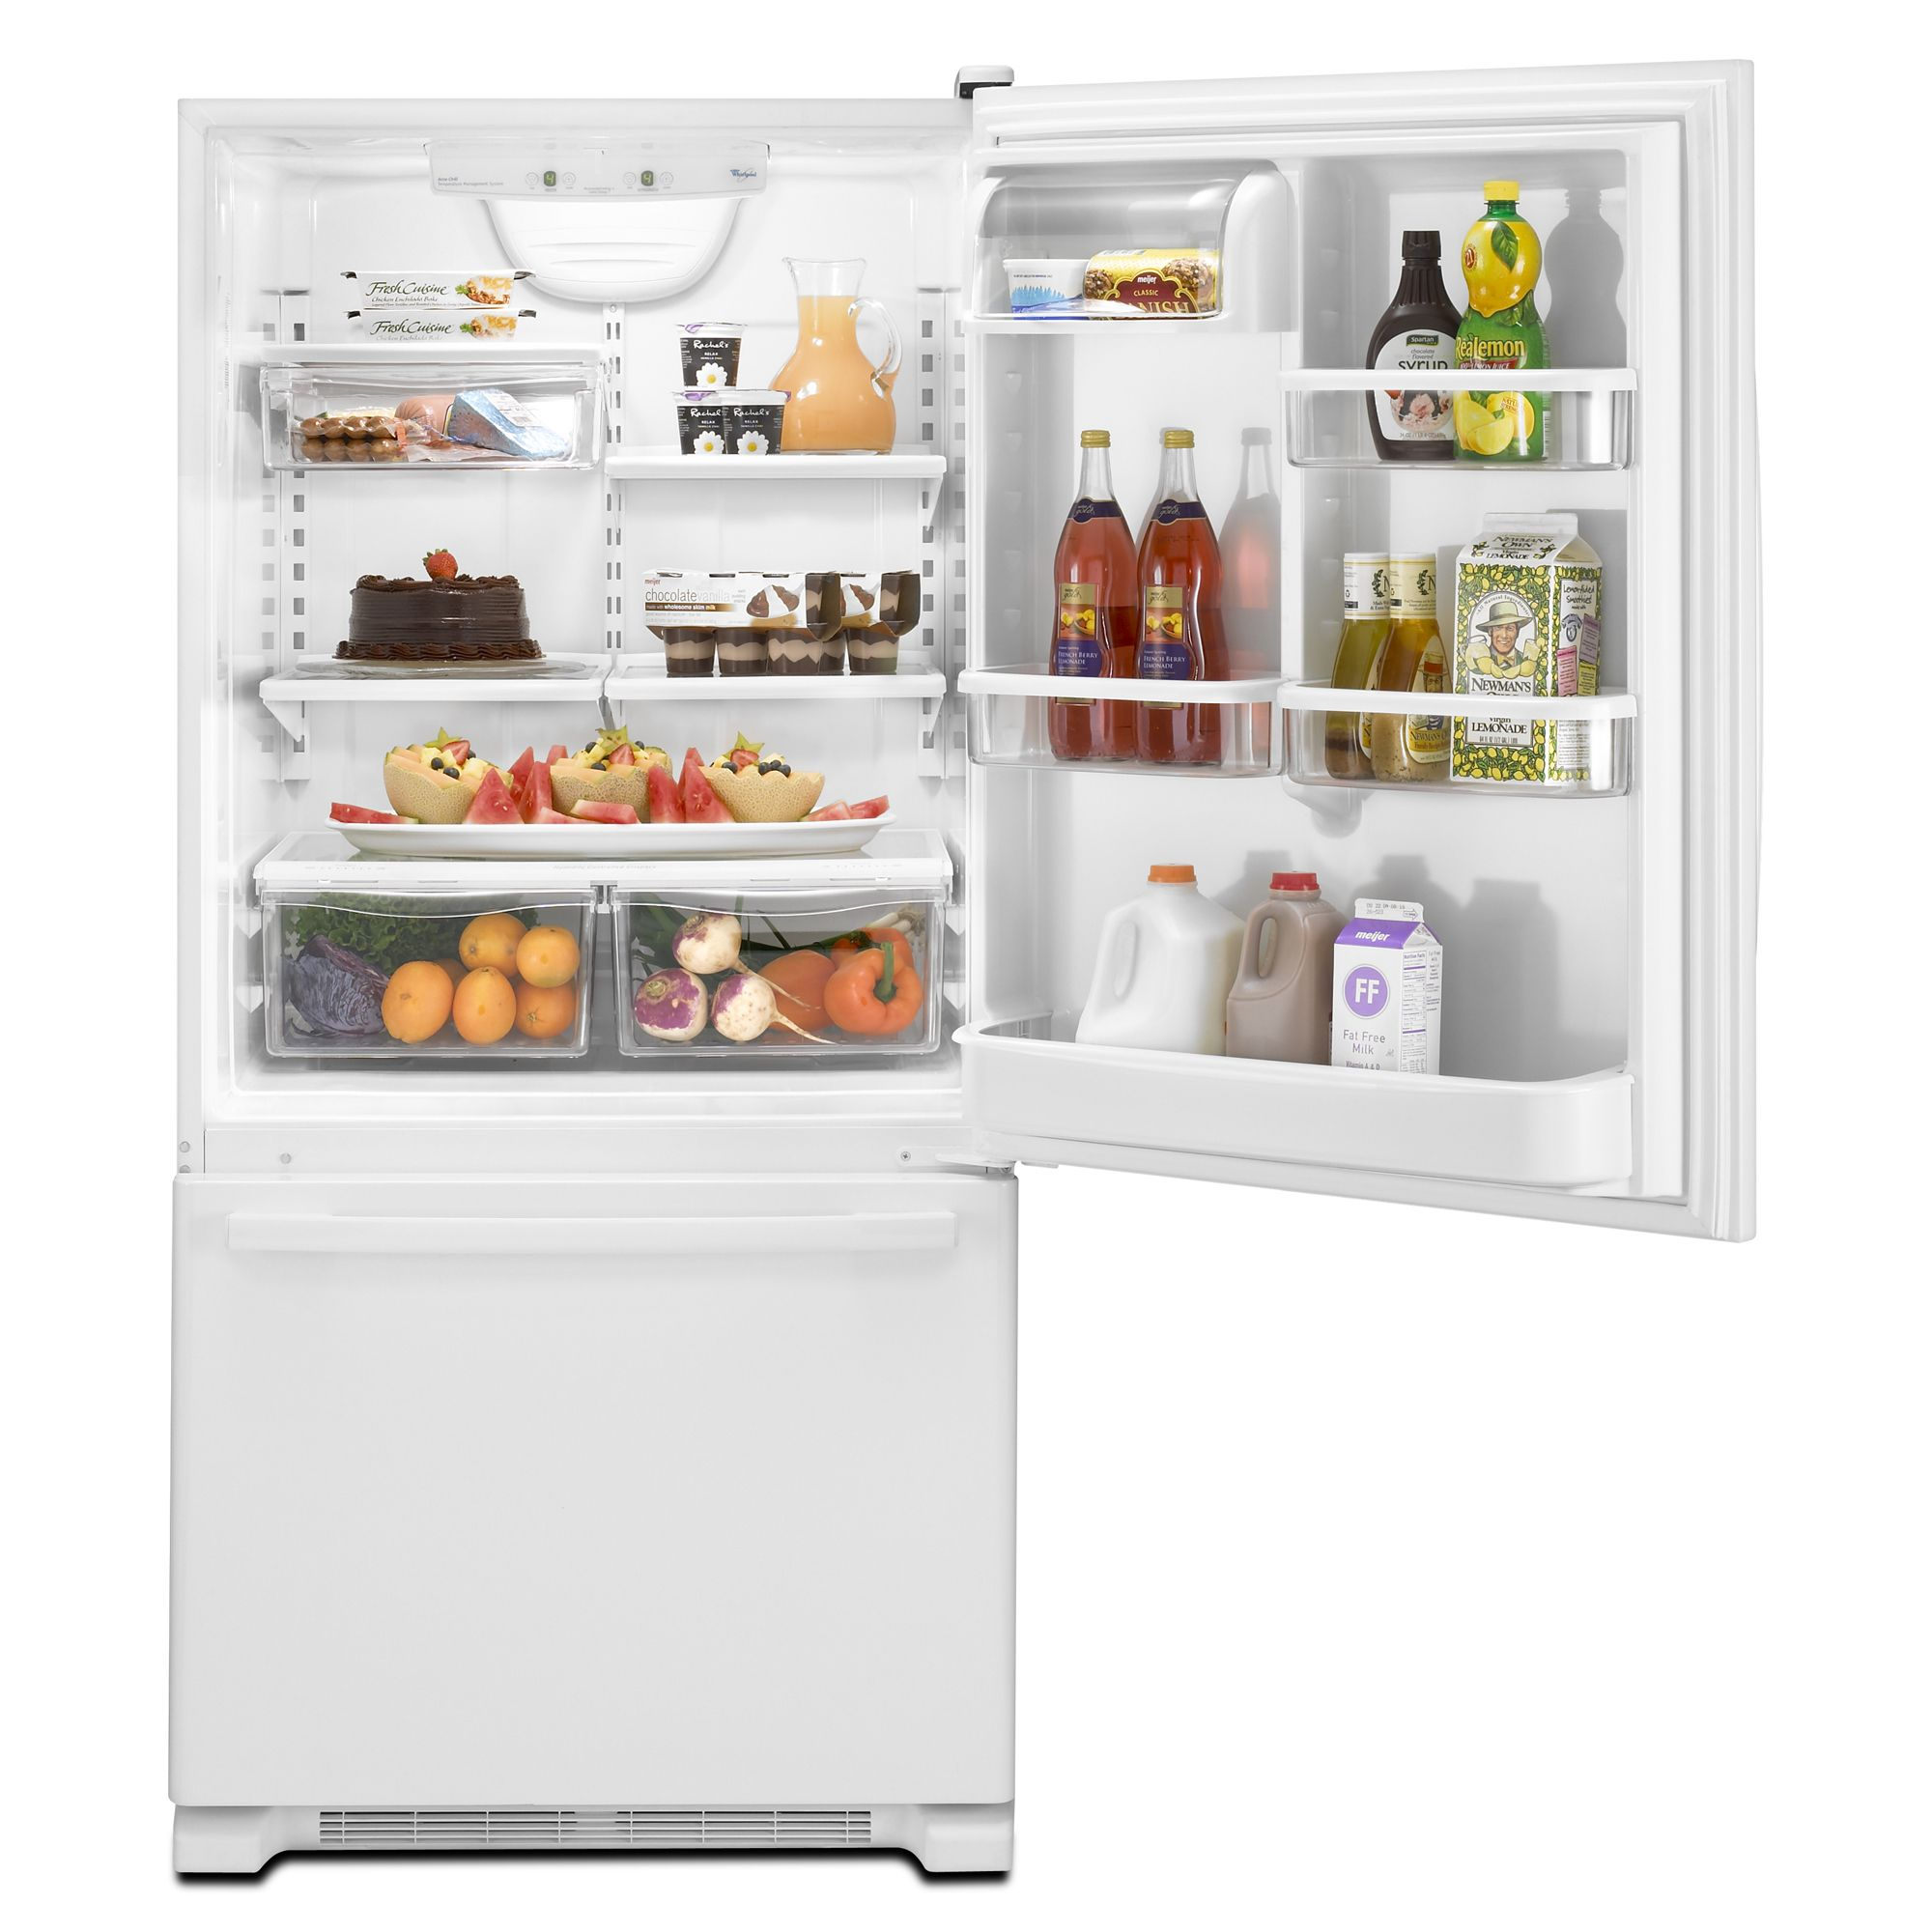 Whirlpool Gold 21.9 cu. ft. Single-Door Bottom-Freezer Refrigerator - White